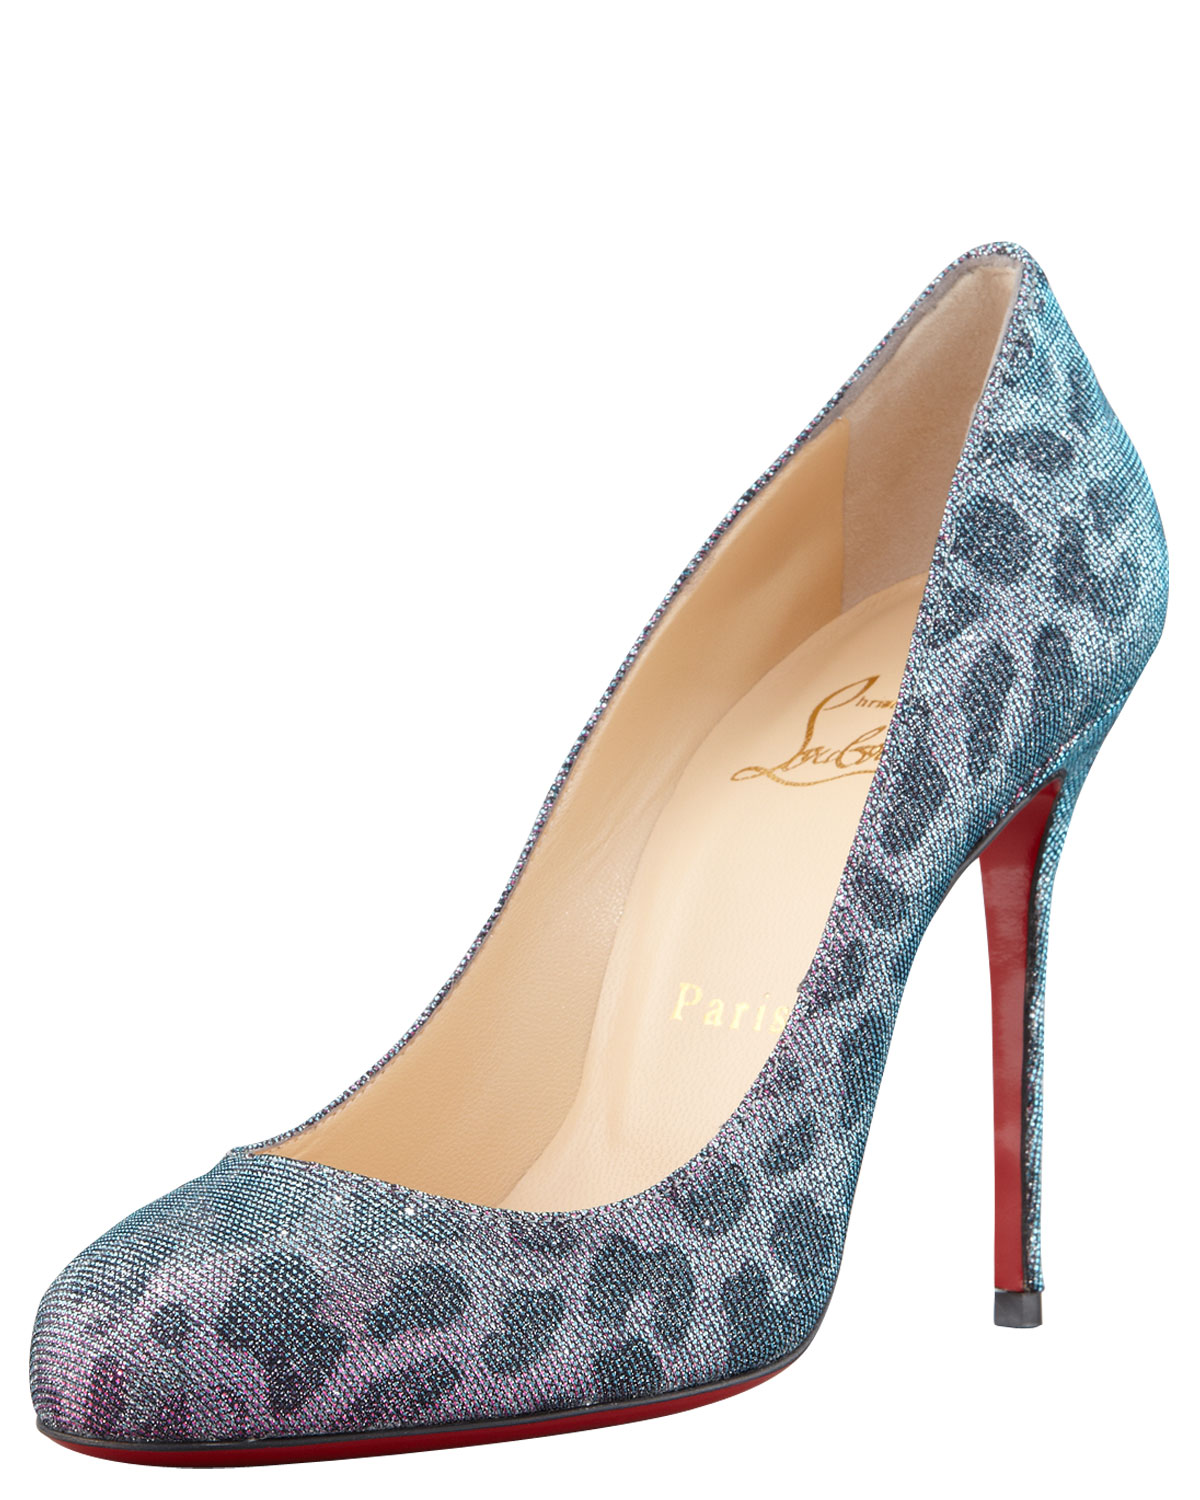 b2acb7ad3e09 Lyst - Christian Louboutin Fifi Metallic Leopard Red Sole Pumps in Blue